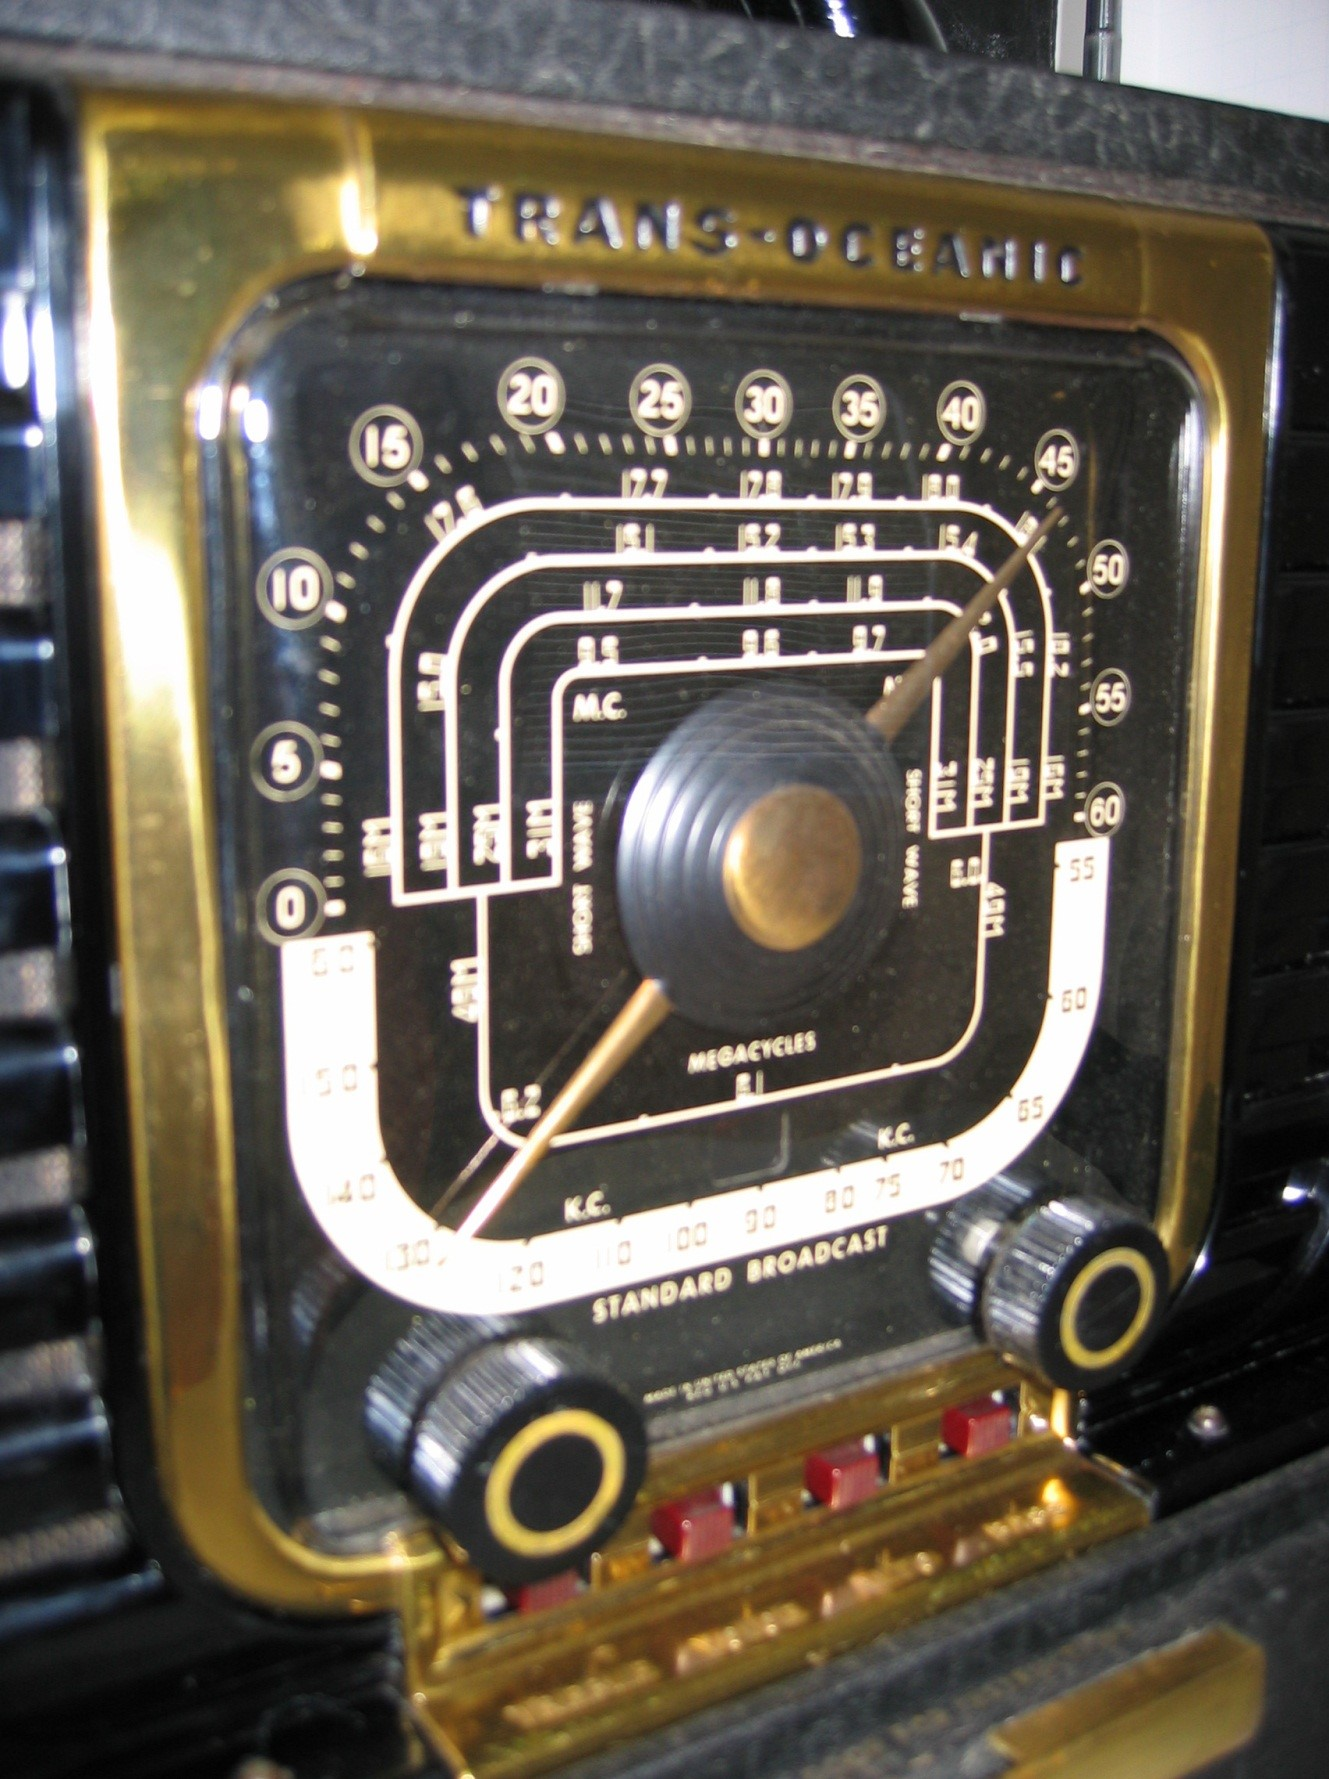 ZENITH Transoceanic 8G005 or maybe it's an 8G005Z1 (1946)